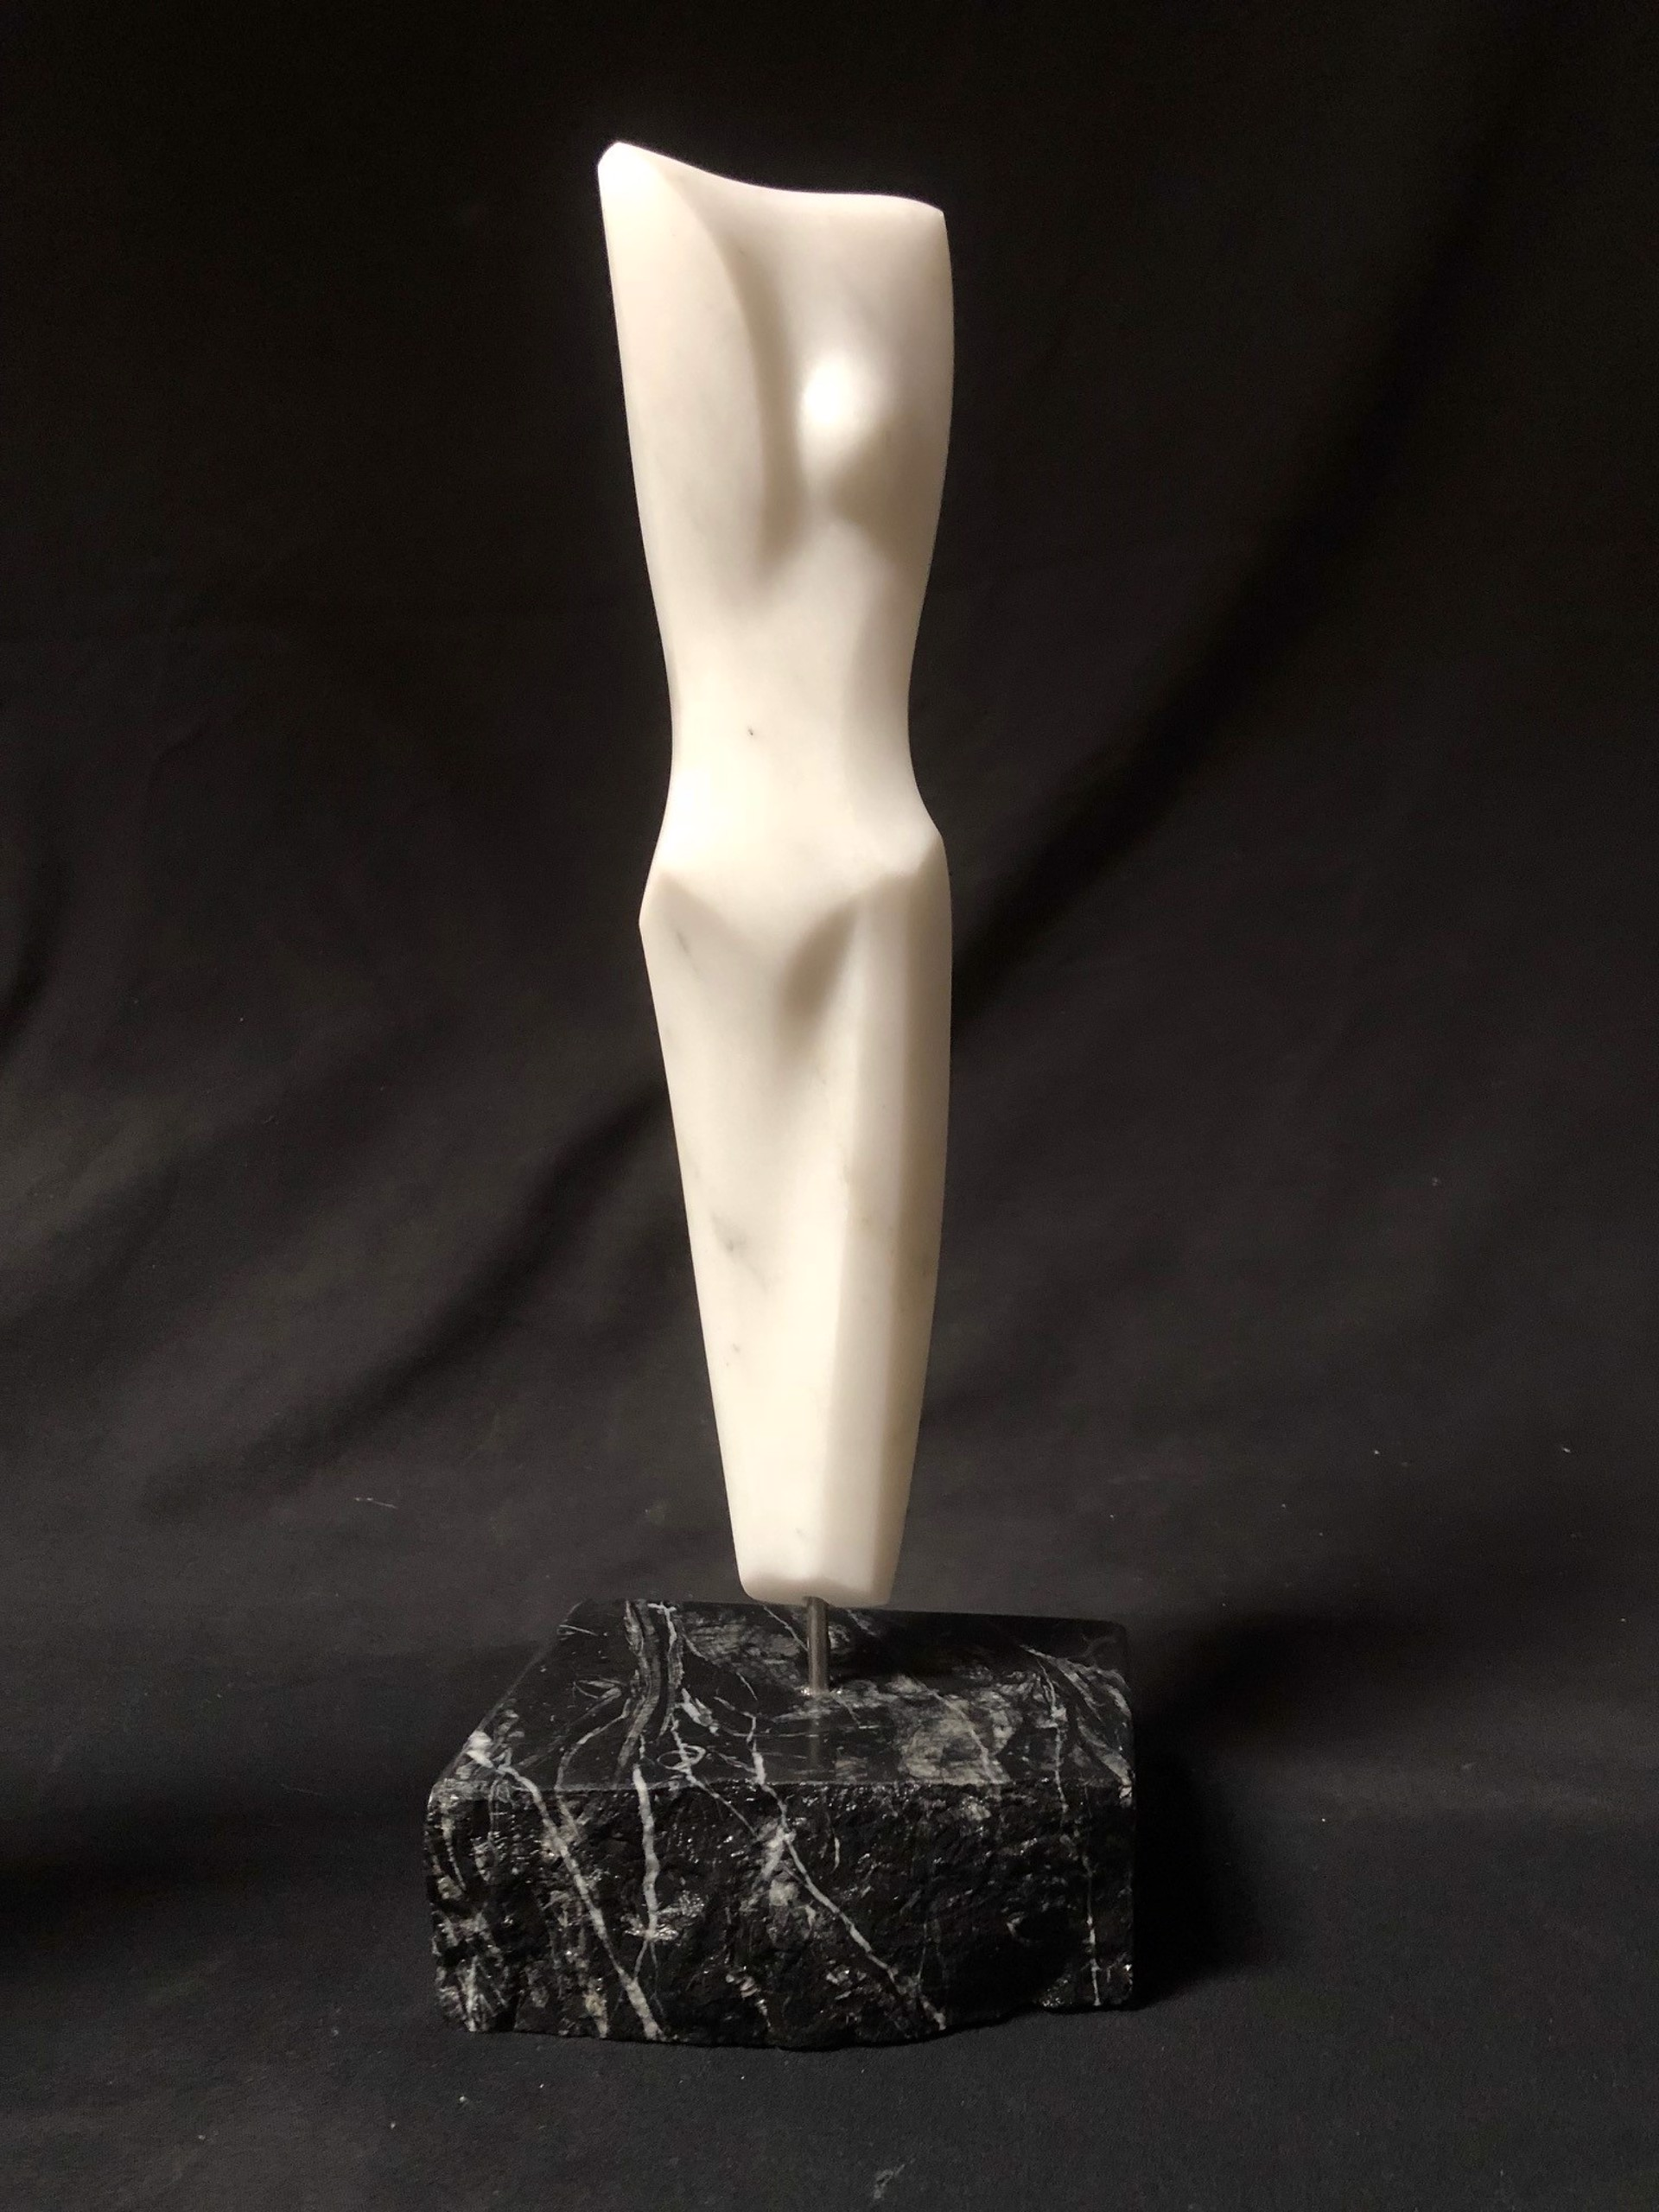 Cycladic Sister 1 (Maquette) by Steven Lustig